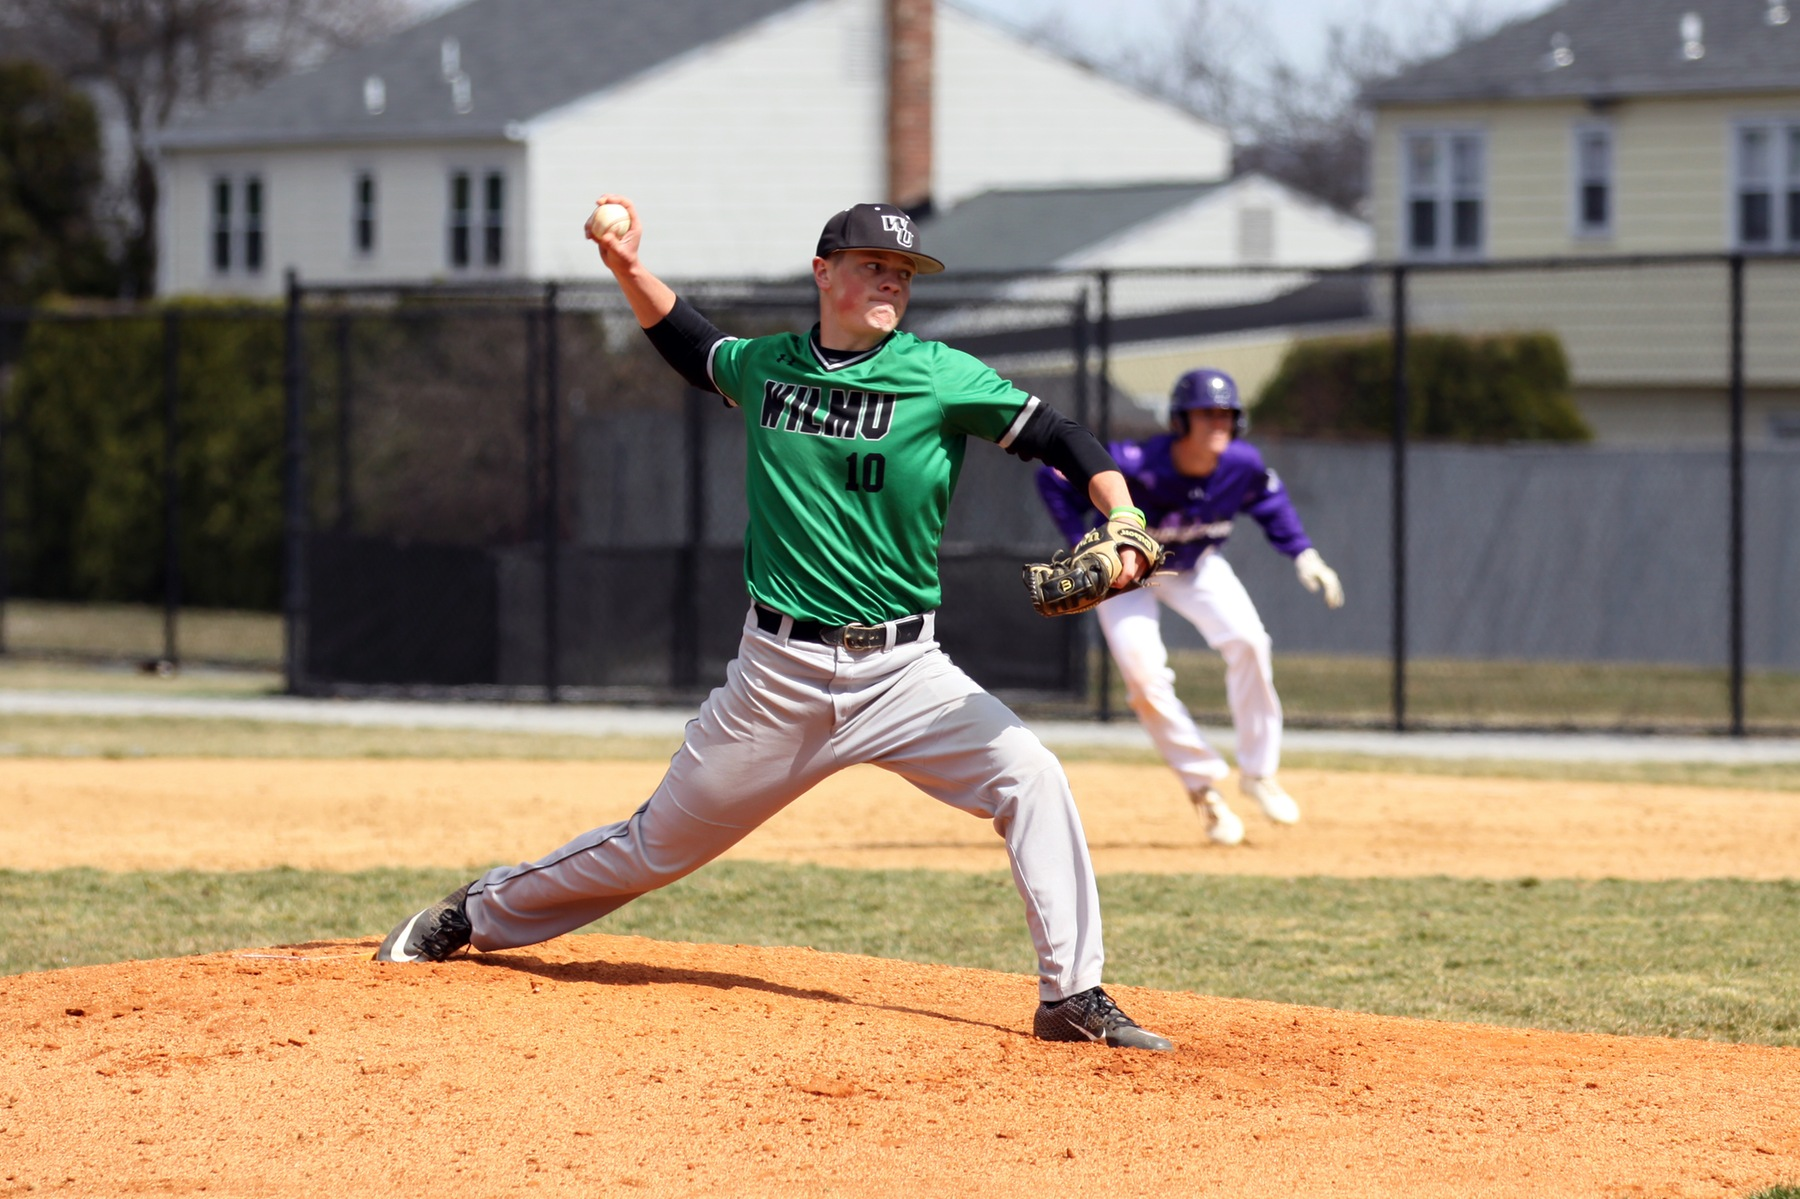 Copyright 2019; Wilmington University. All rights reserved. Photo of Dan Hyatt as he improved to 3-1 with the win. Photo by Dan Lauletta. March 17, 2019 vs. Bridgeport.